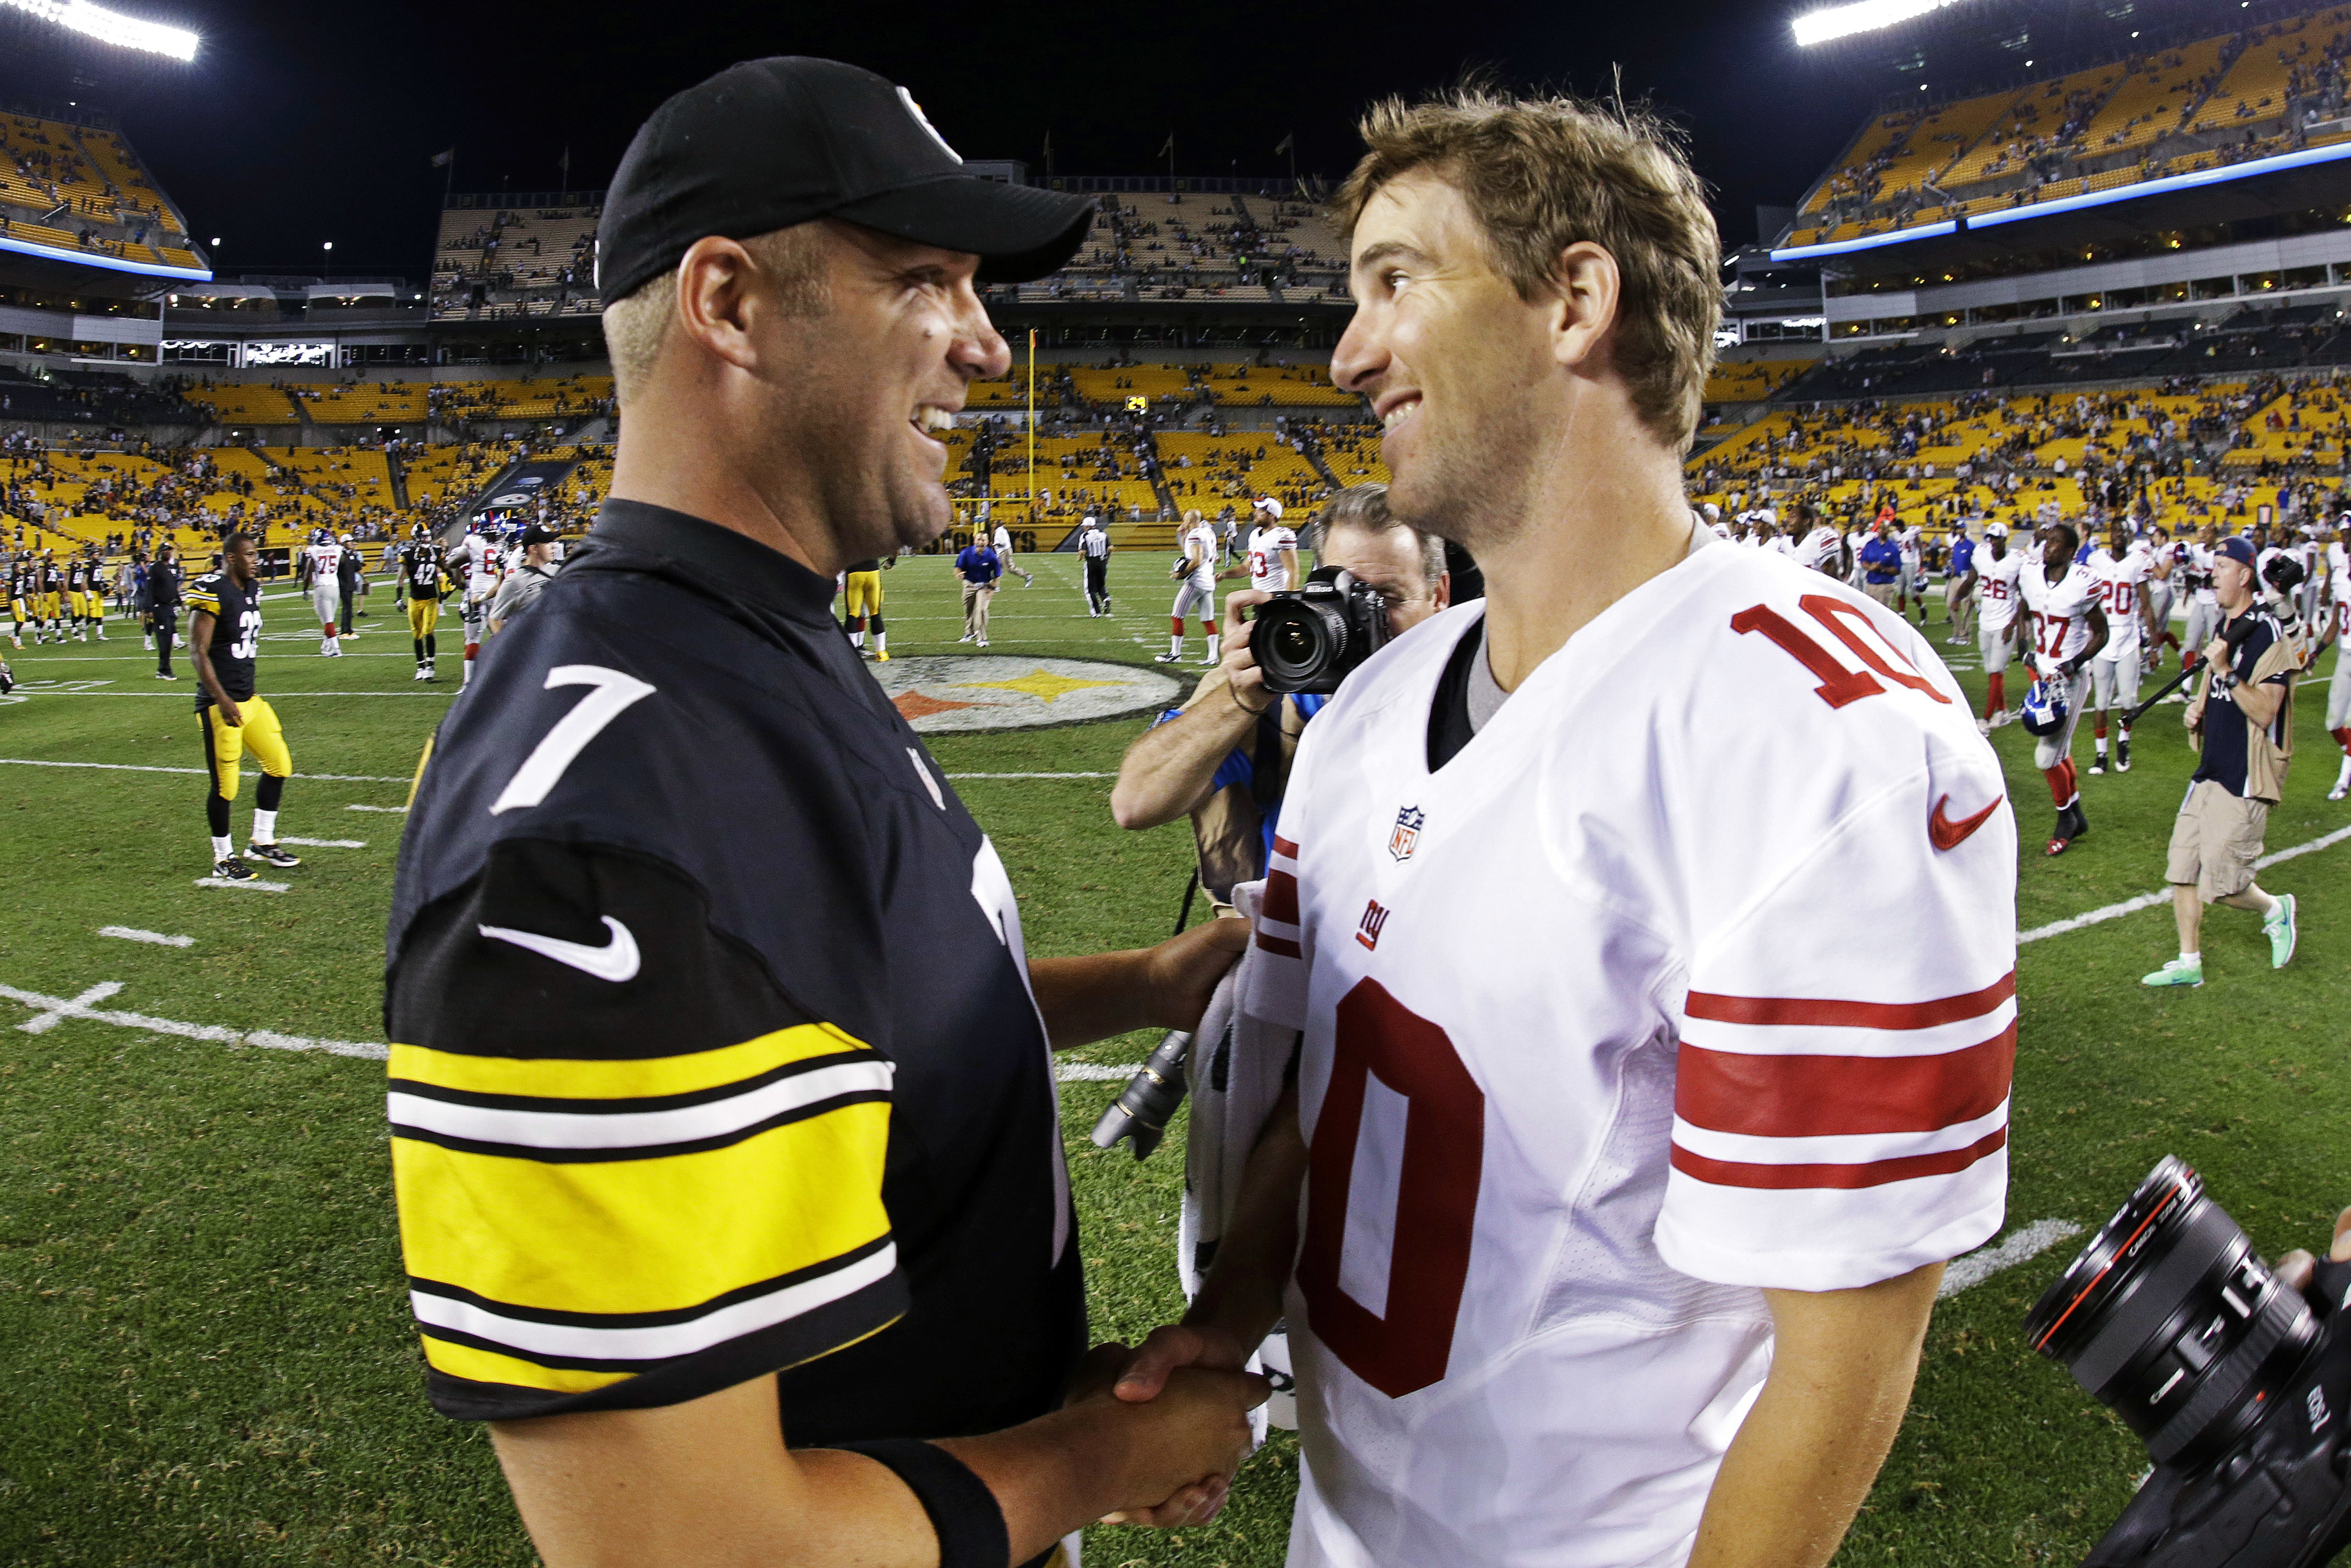 FILE - In this Aug. 10, 2013, file photo, Pittsburgh Steelers quarterback Ben Roethlisberger (7) and New York Giants quarterback Eli Manning (10) shake hands after an NFL preseason football game in Pittsburgh. Roethlisberger and Manning are inextricably l